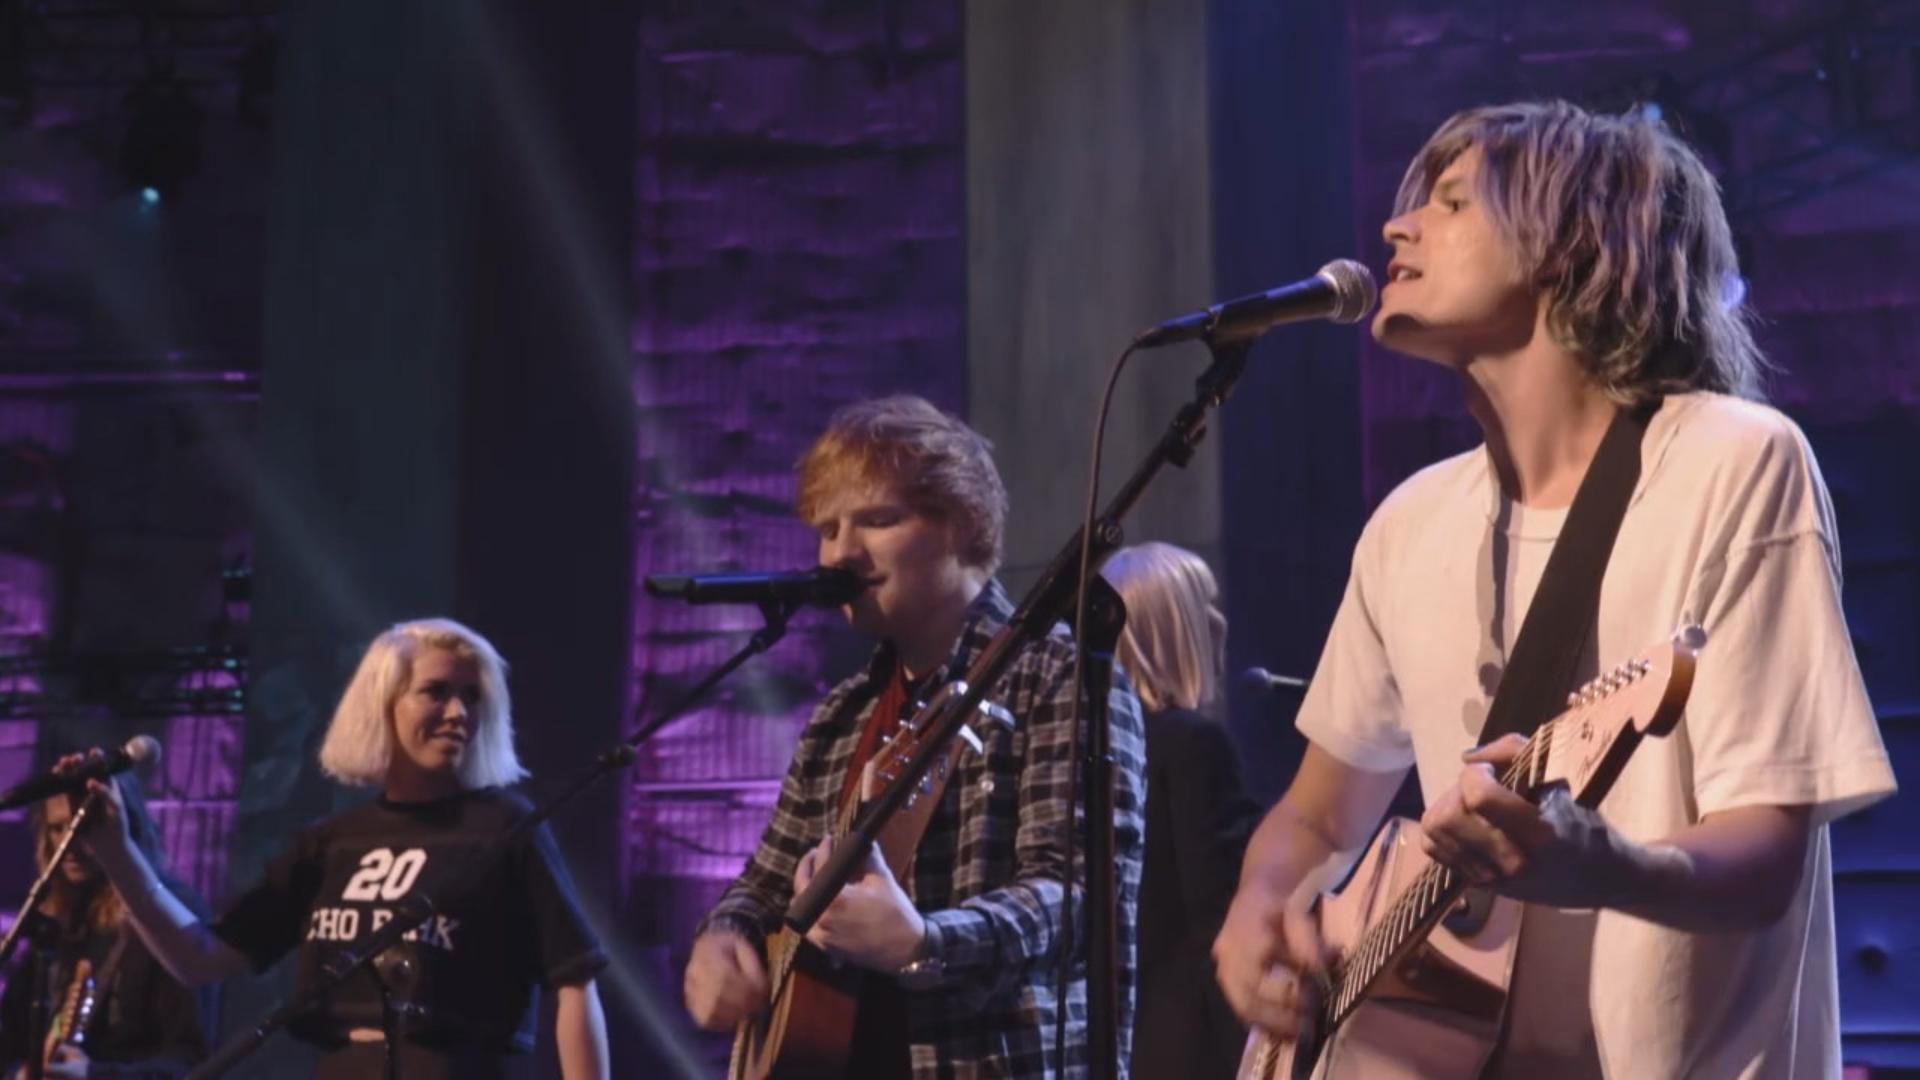 Ed Sheeran, Sia and Grouplove